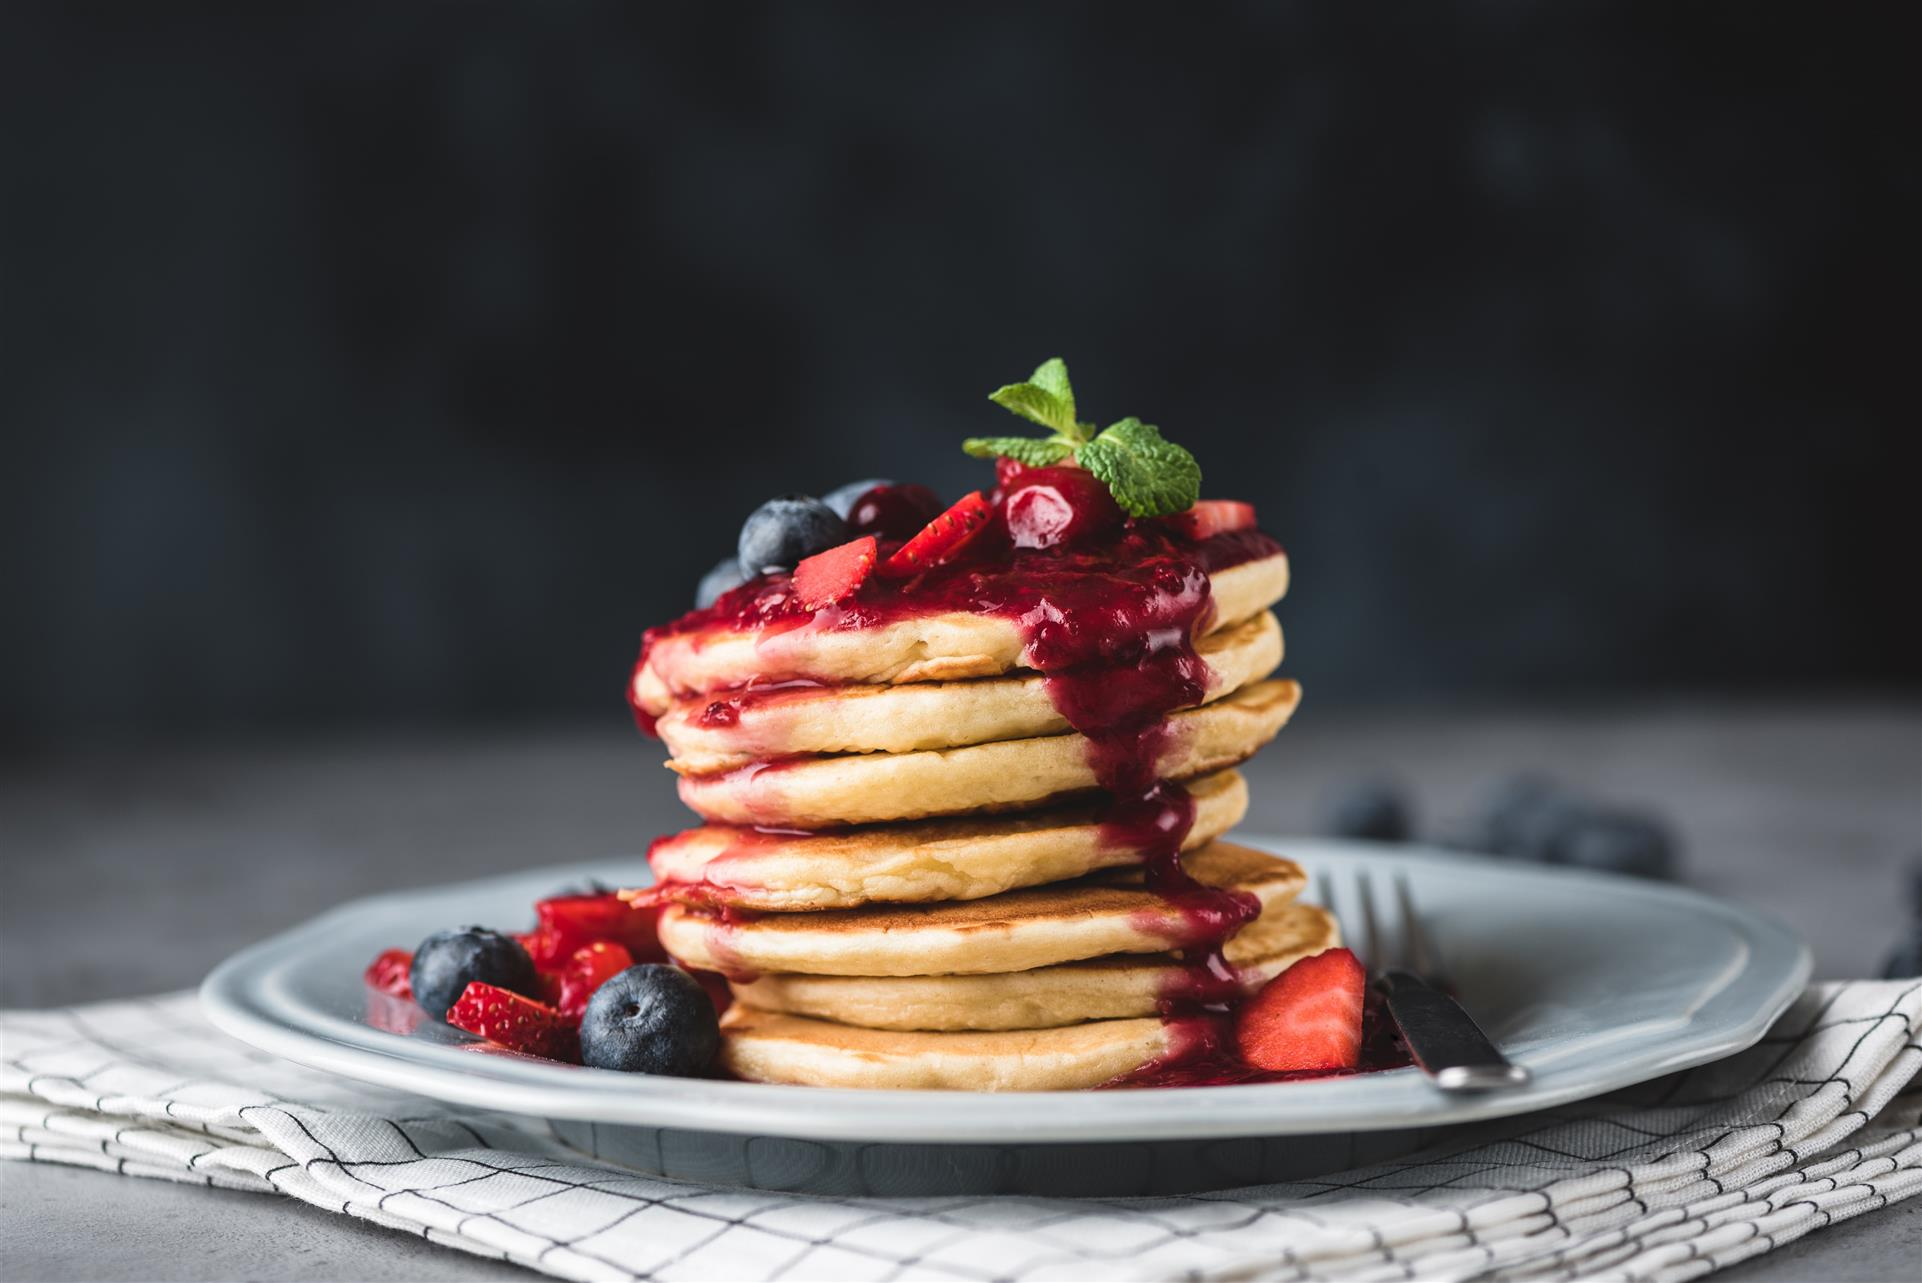 stack of pancakes topped with syrup, blueberries and raspberries